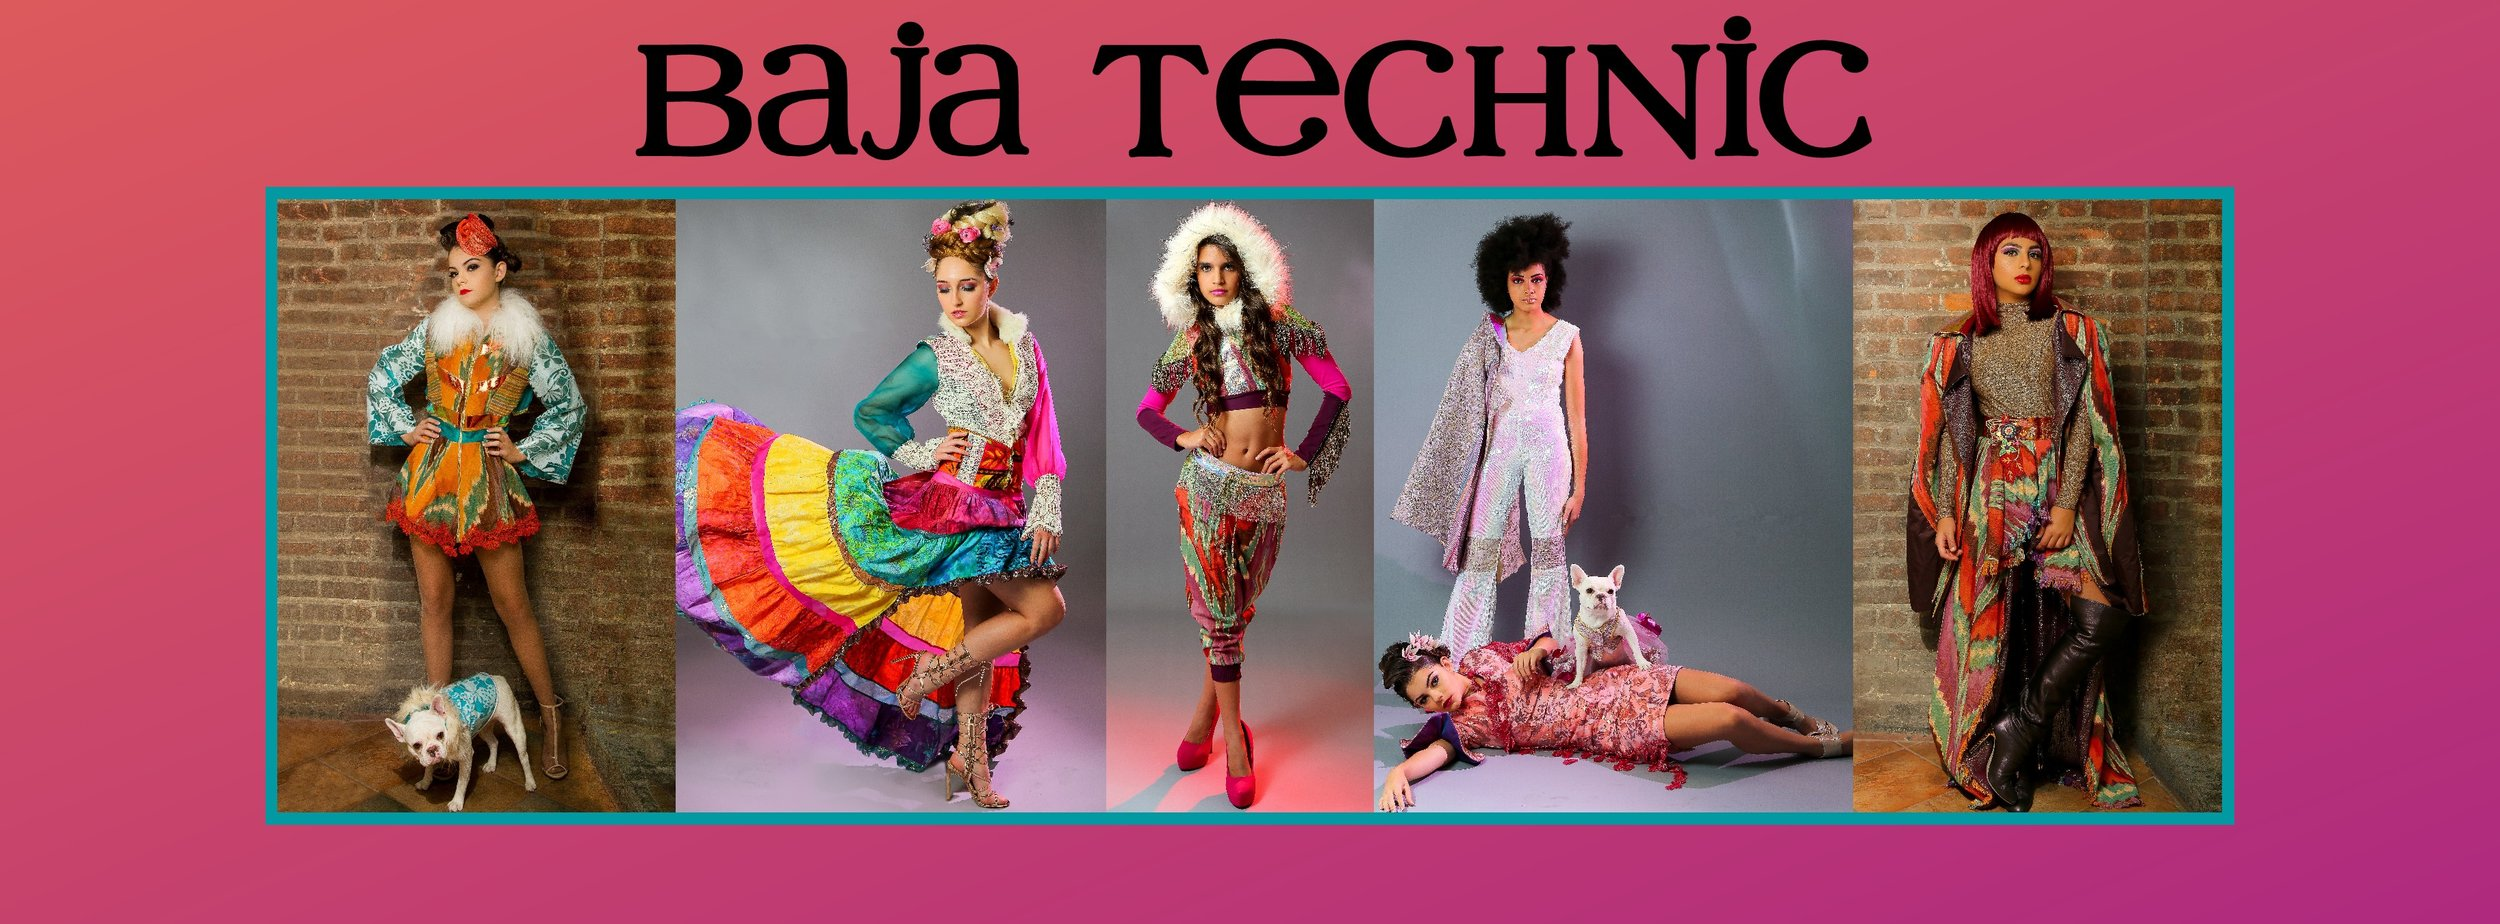 baja technic website.jpg